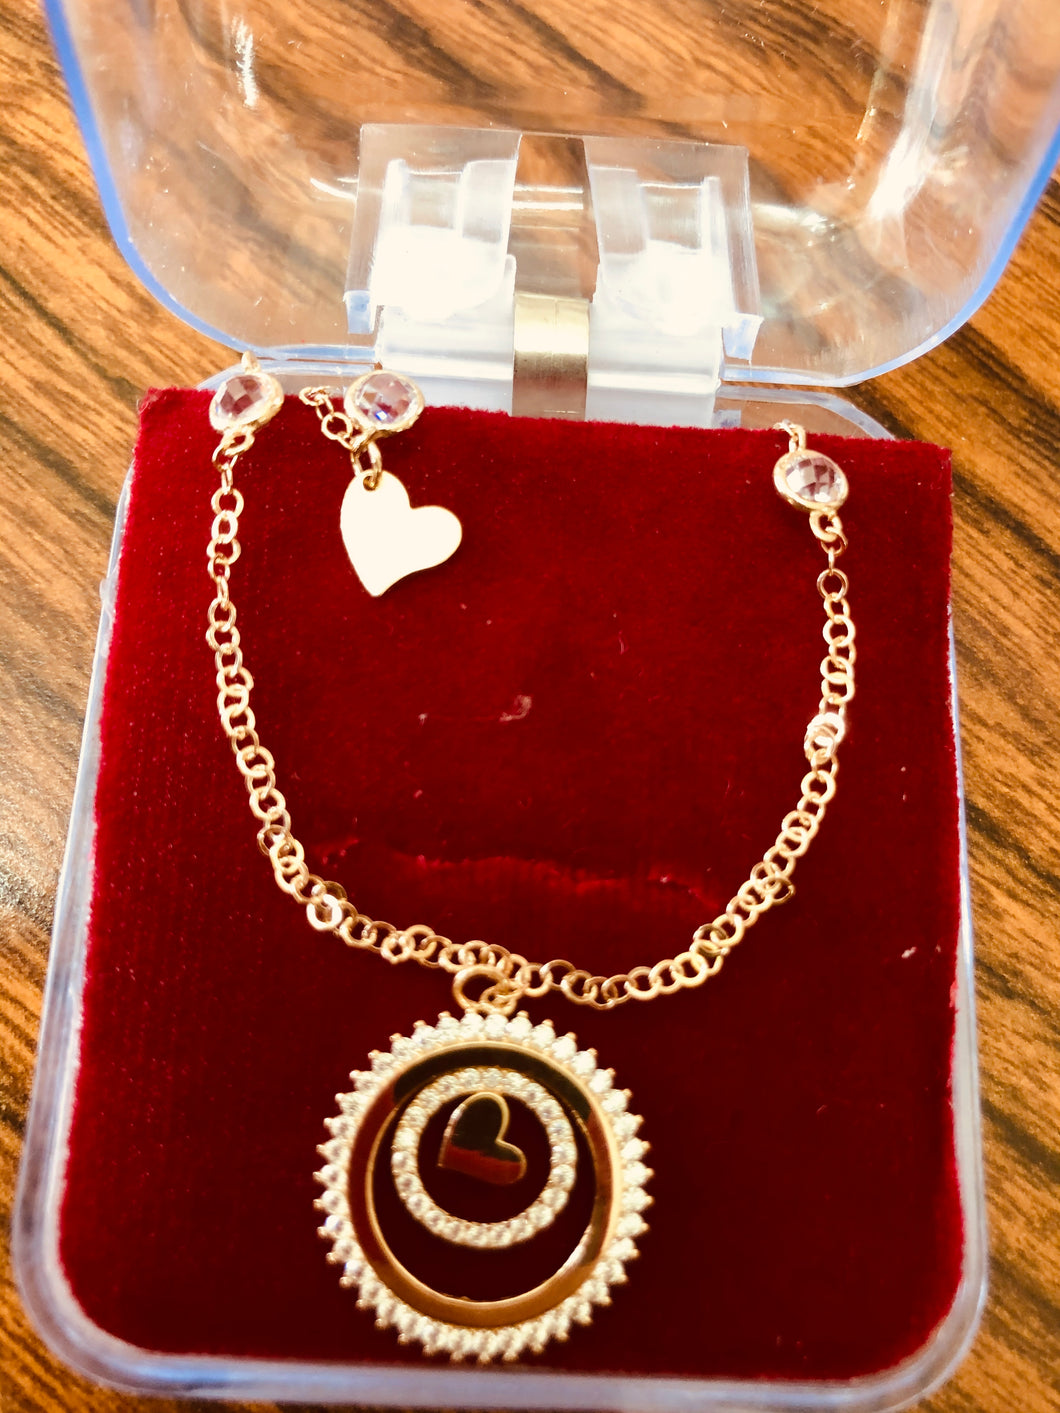 14k gold chain and heart pendant